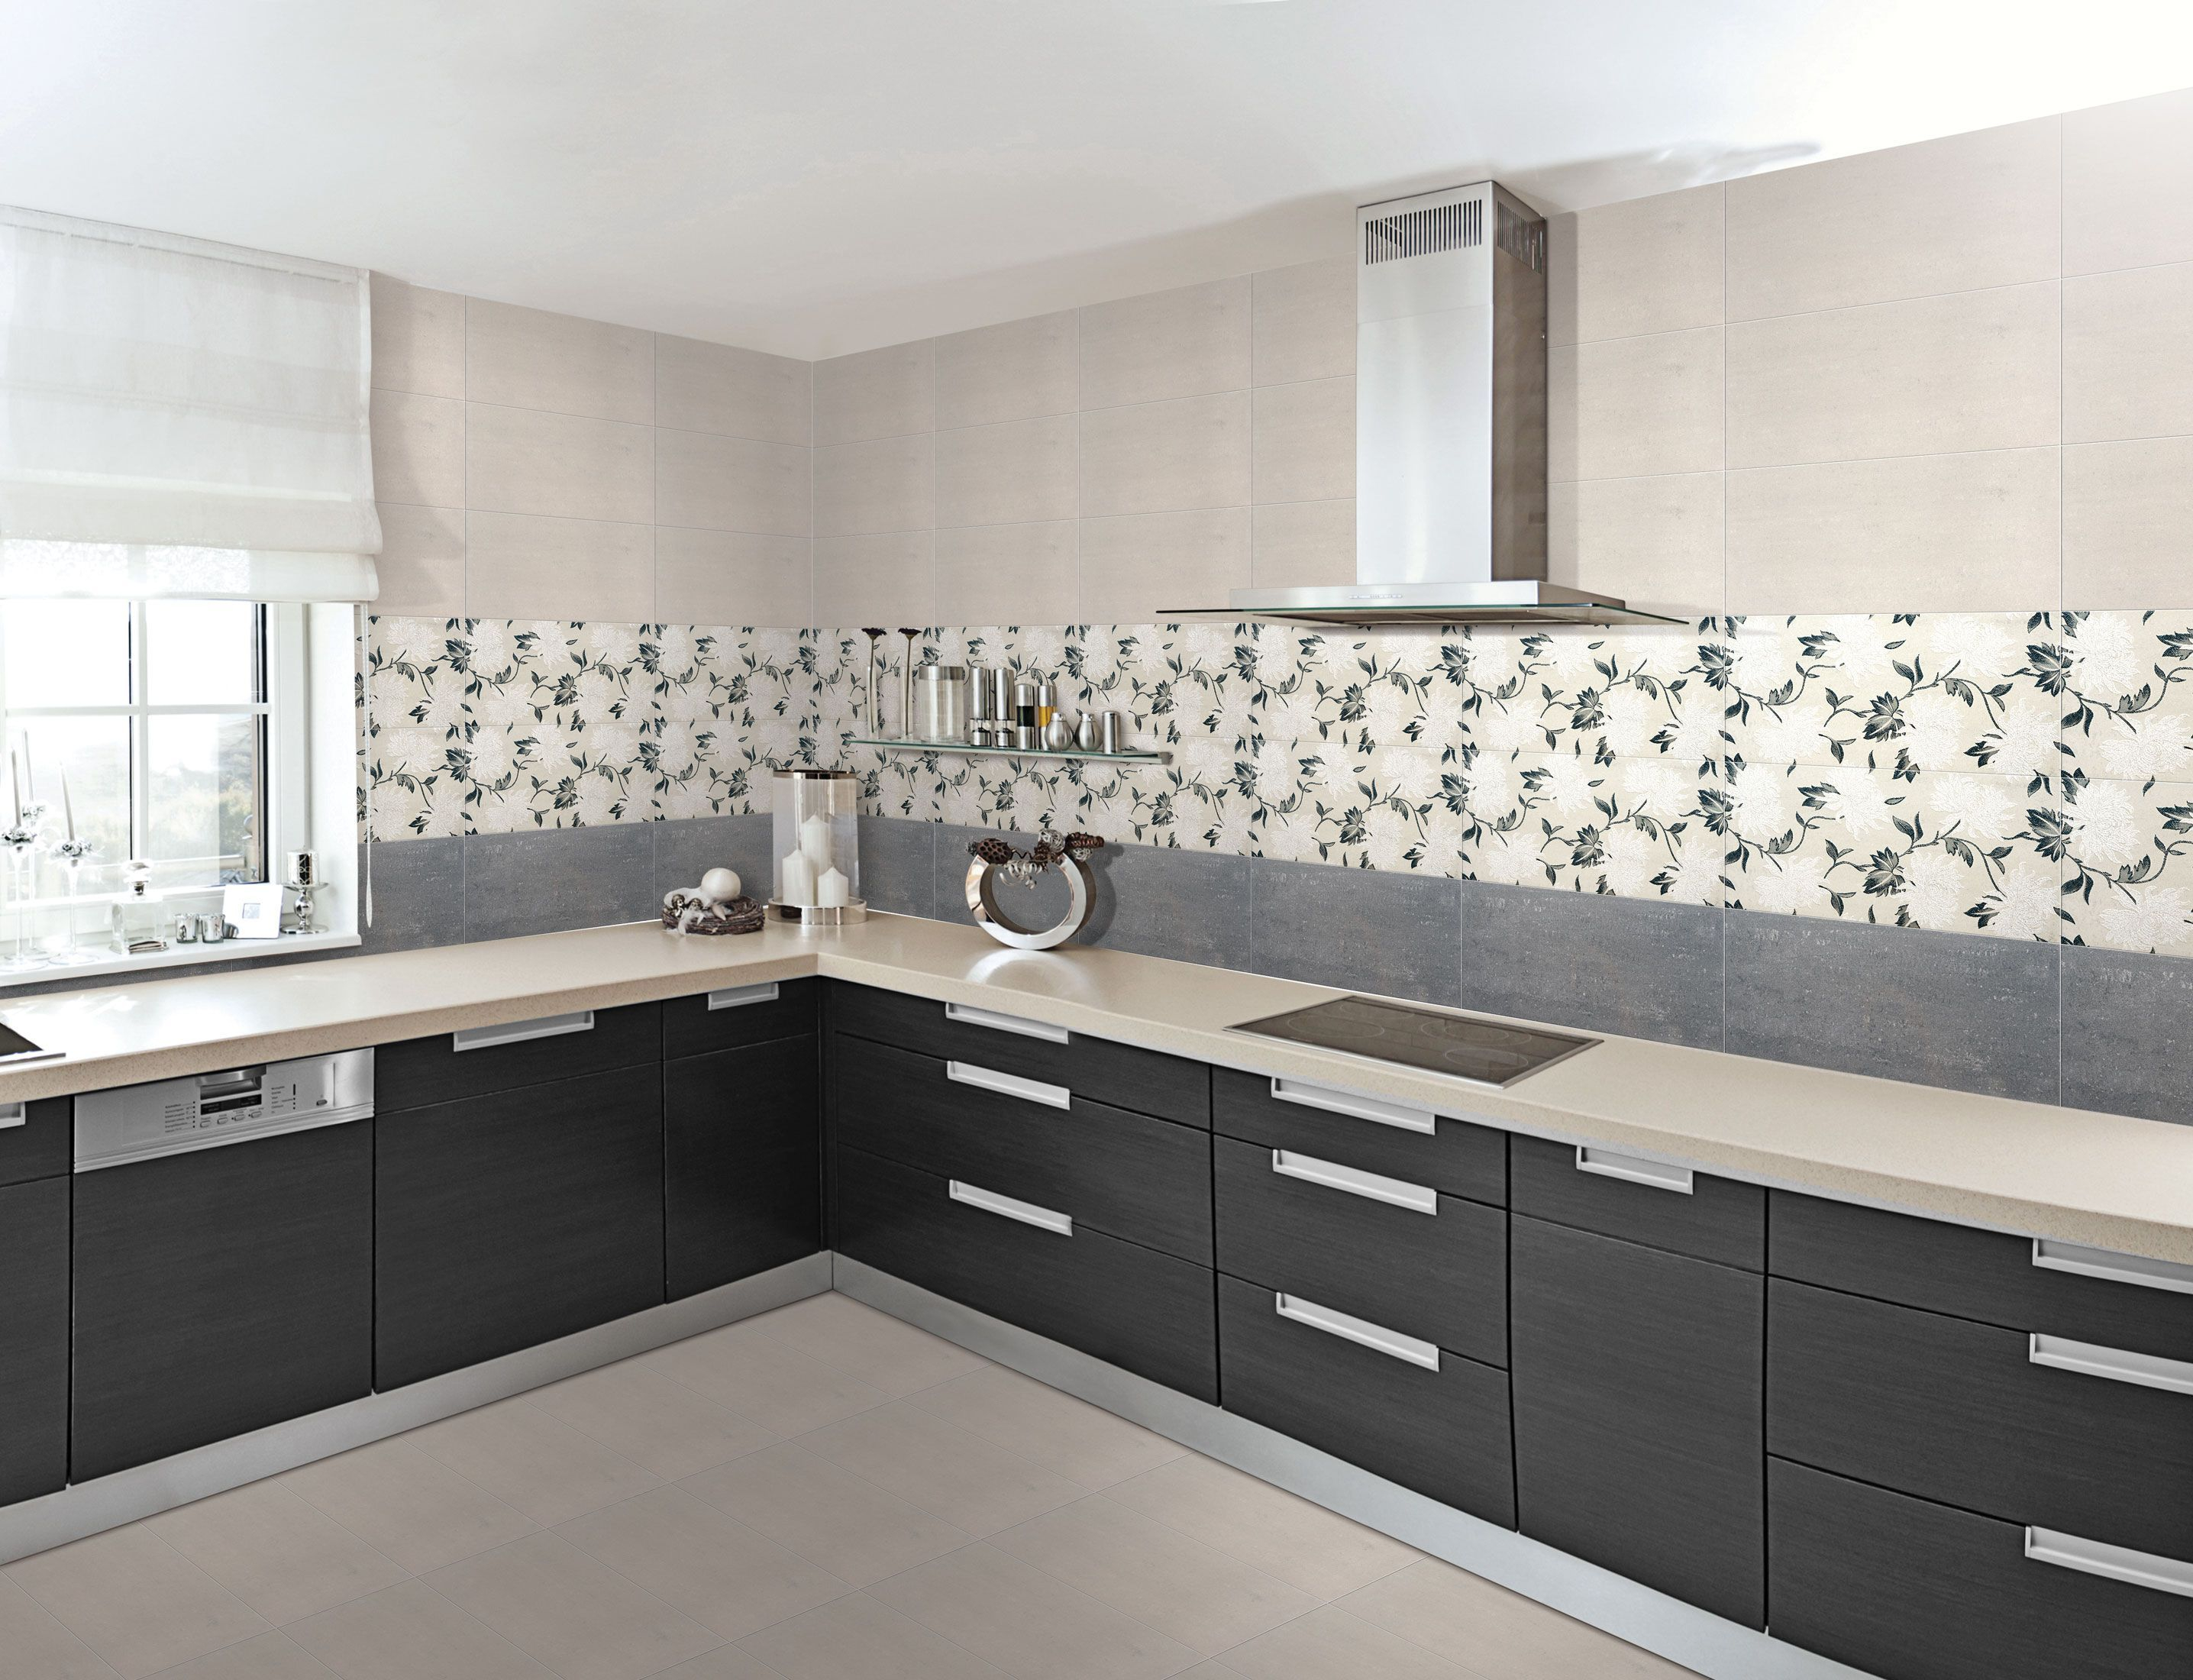 15 Why Choosing Modern Kitchen Wall Tiles Design Trend